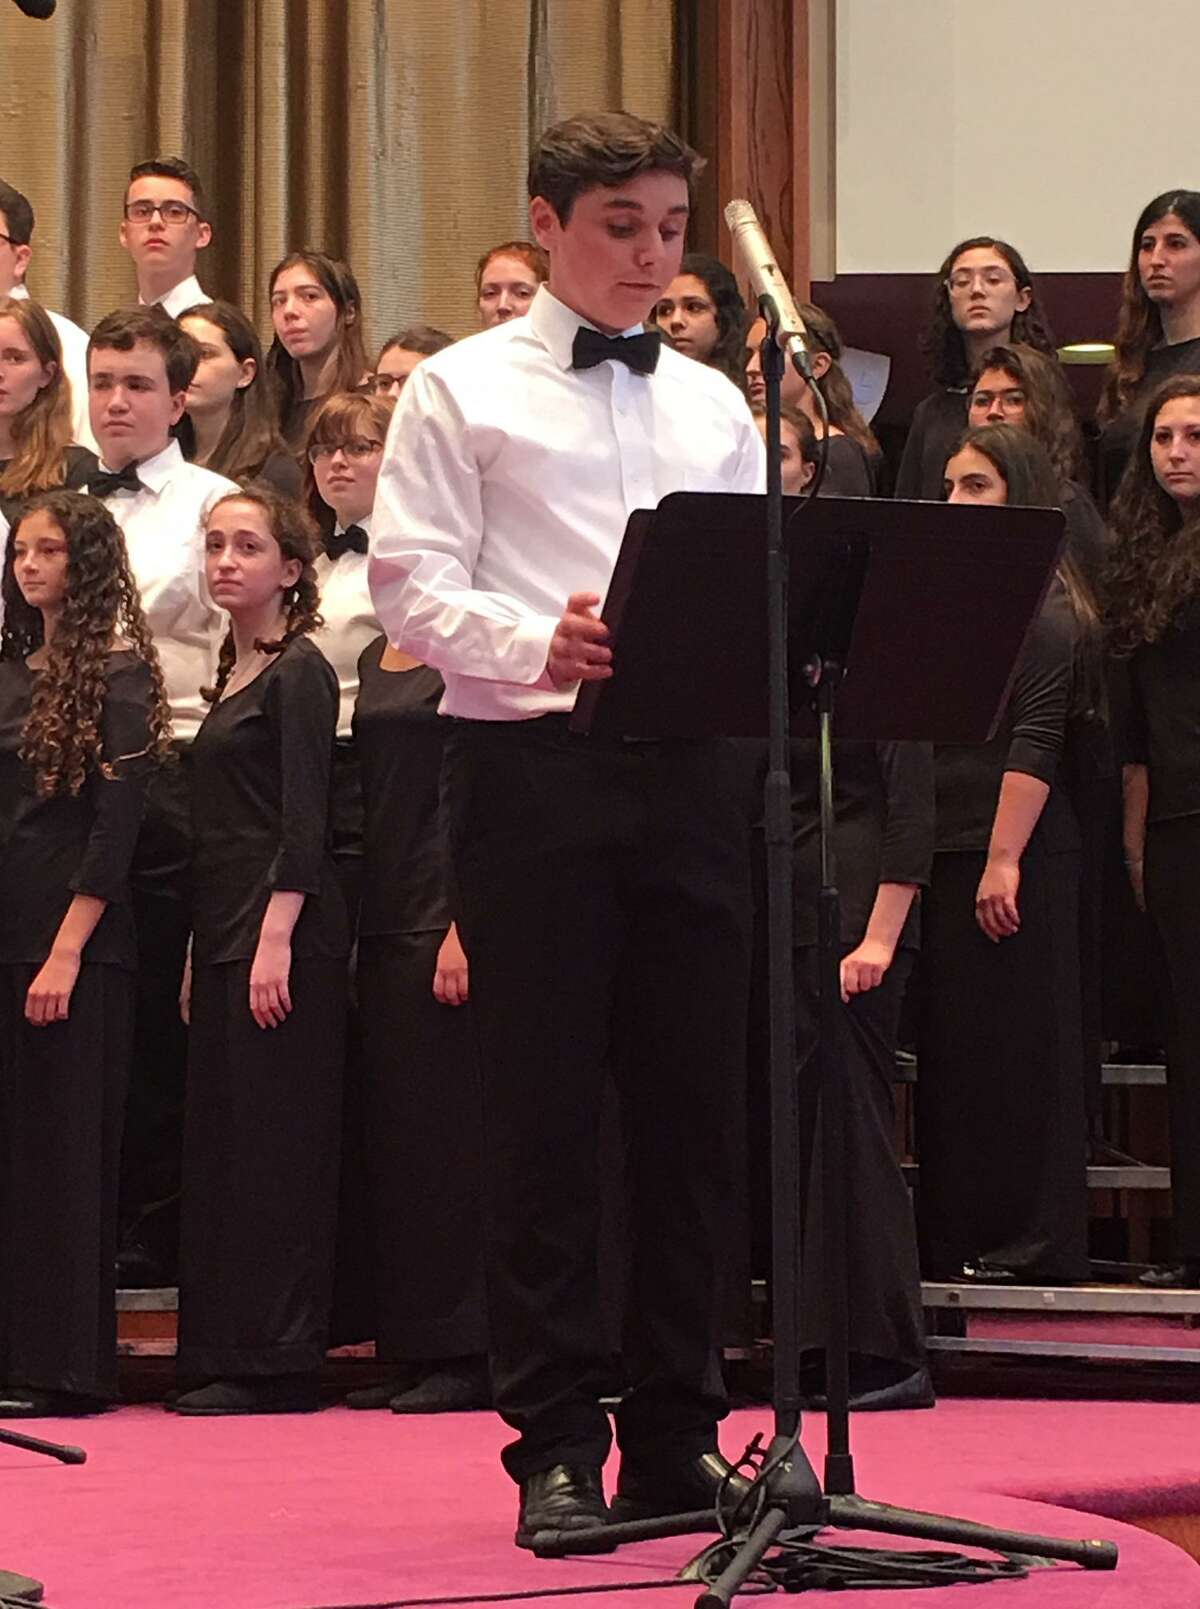 Singers from 20 chapters of HaZamir: The International Jewish Teen Choir joined HaZamir Pittsburgh for a free concert on May 19 at Temple Sinai in solidarity with the city of Pittsburgh.